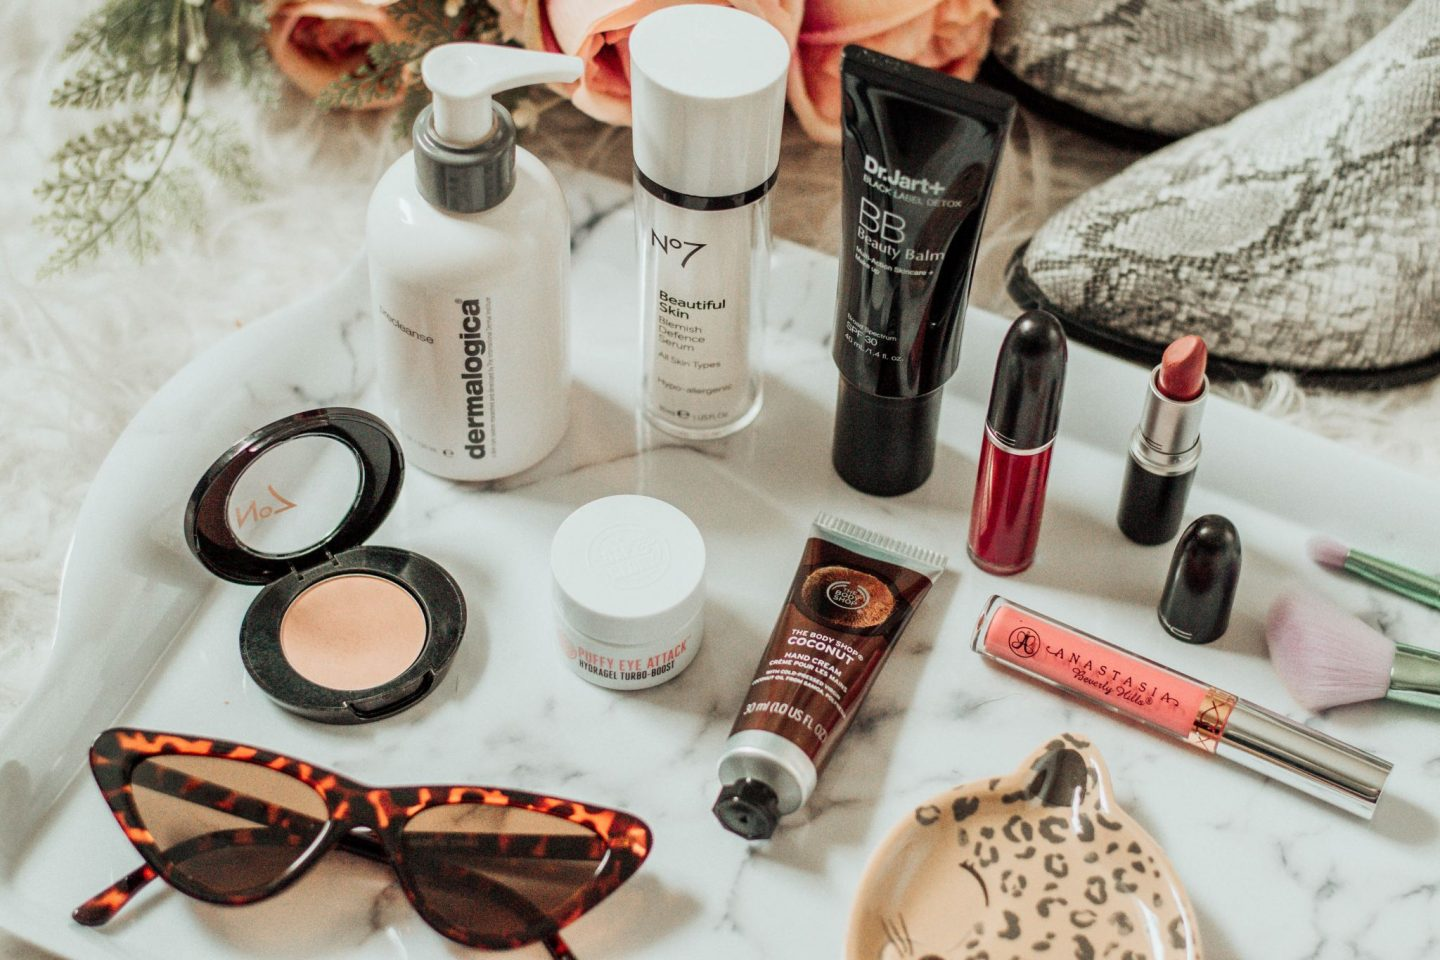 Current beauty and lifestyle favourites